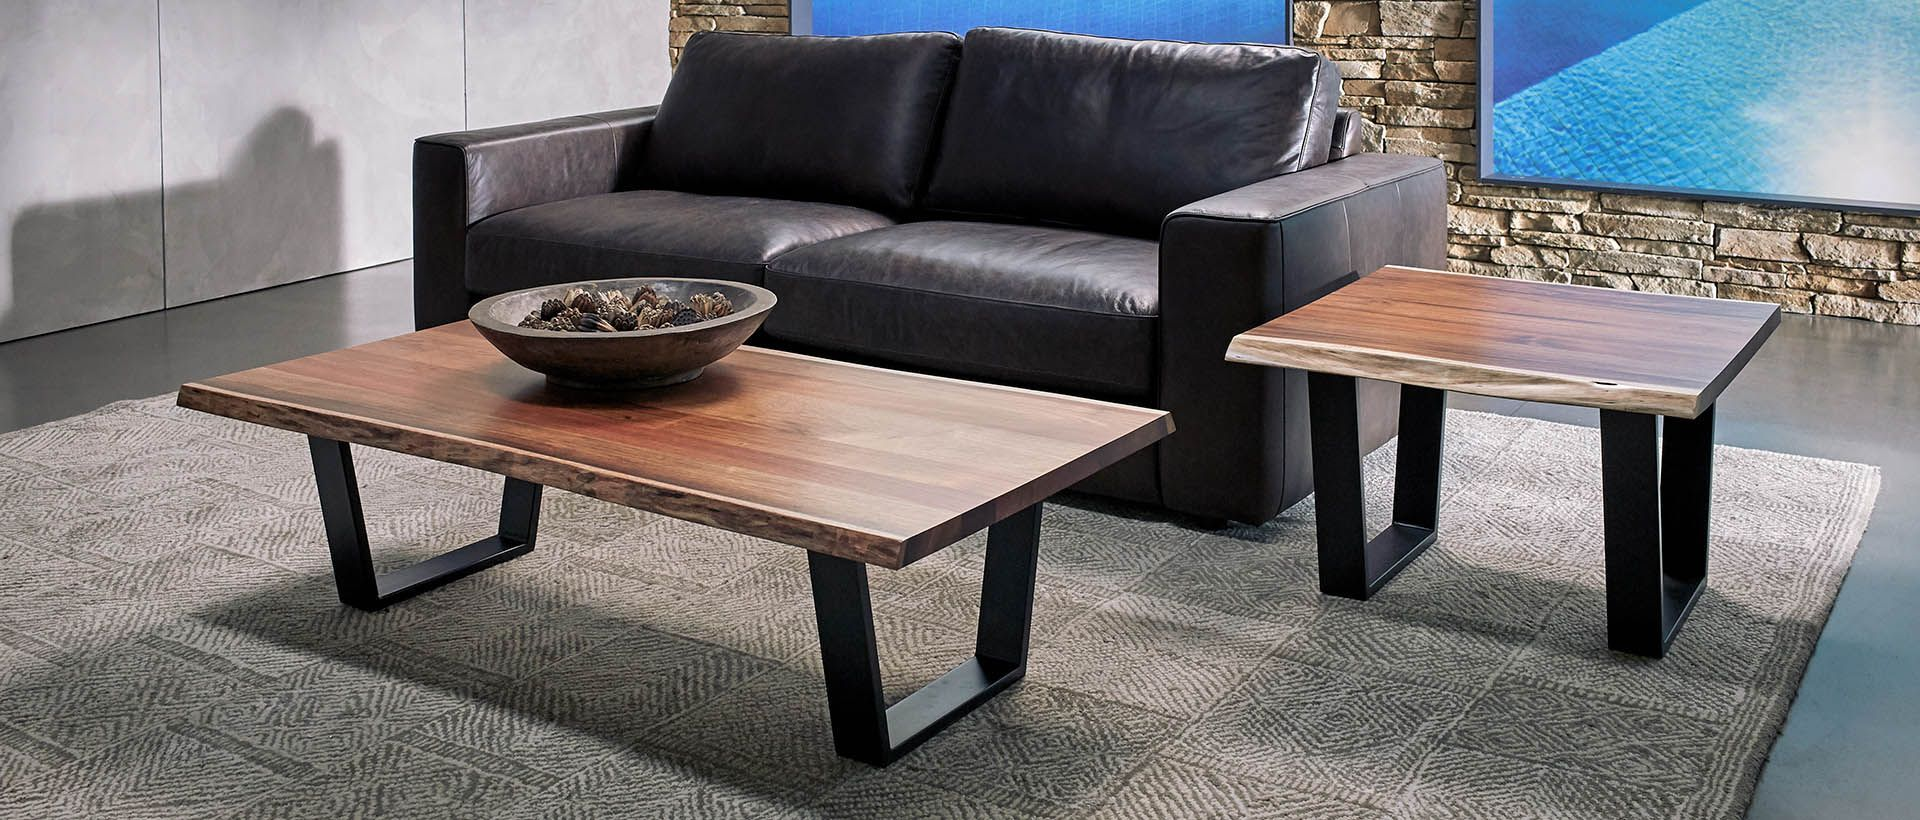 Nick Scali Coffee Lamp Tables Nick Scali Furniture Wood Cocktail Table Coffee Table Table [ 820 x 1920 Pixel ]